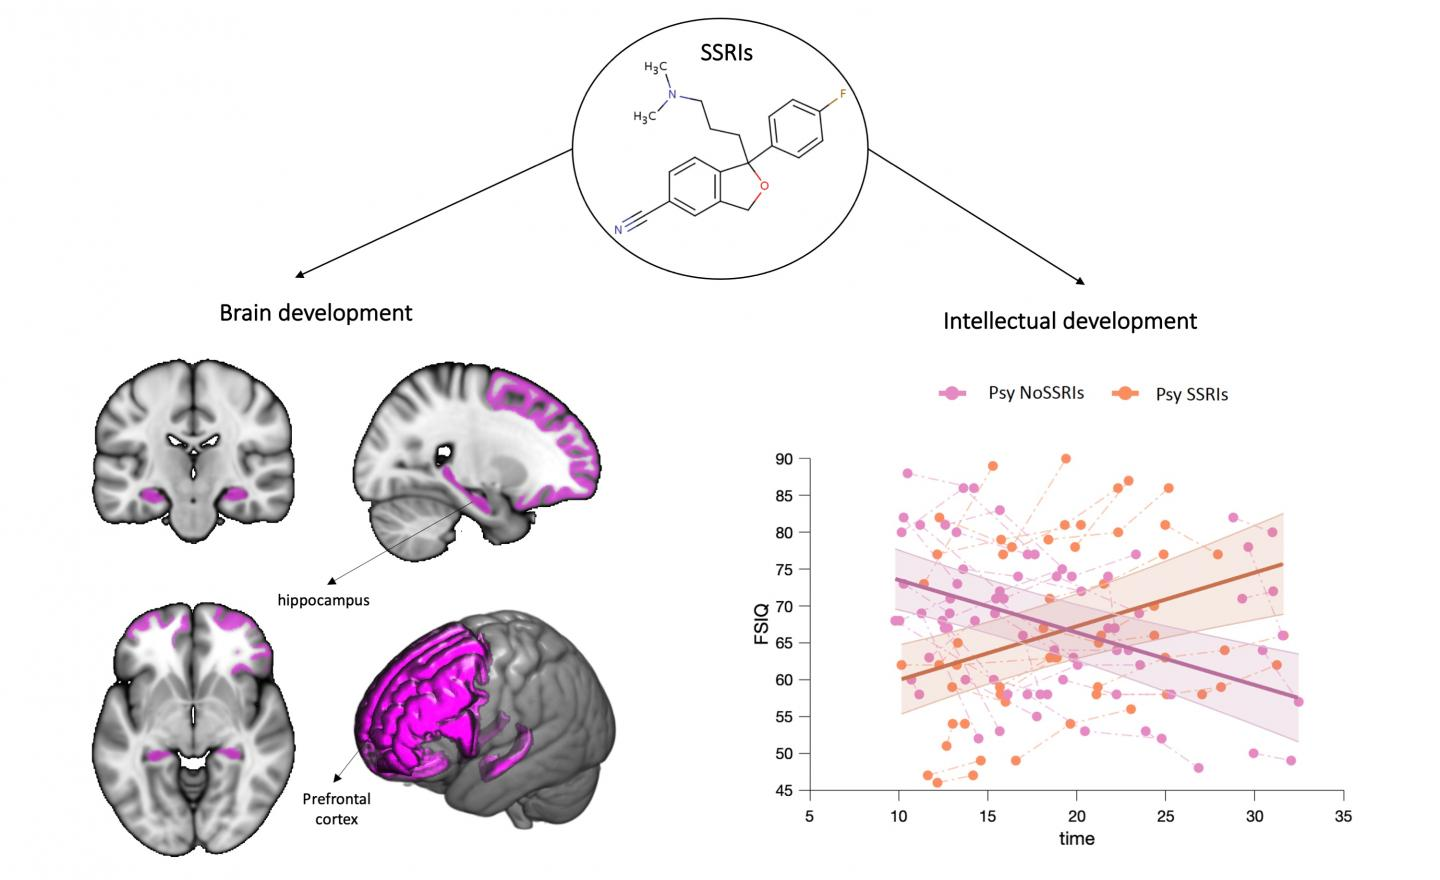 Effects of SSRIs on brain and intellectual development.